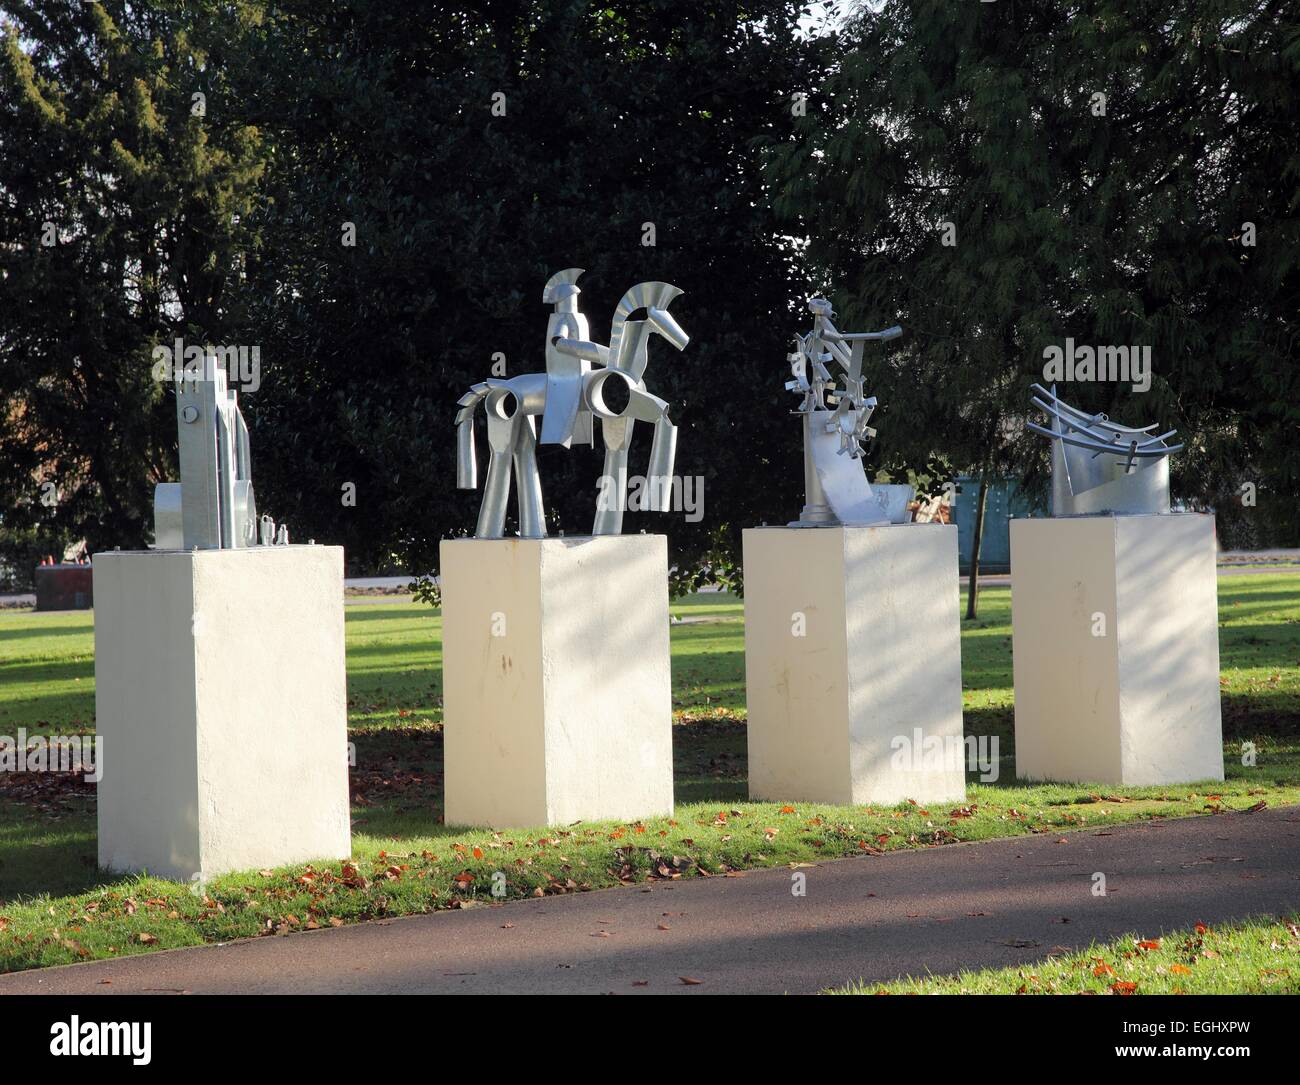 25th anniversary sculptures in Grove House Gardens, Dunstable, Bedfordshire - Stock Image